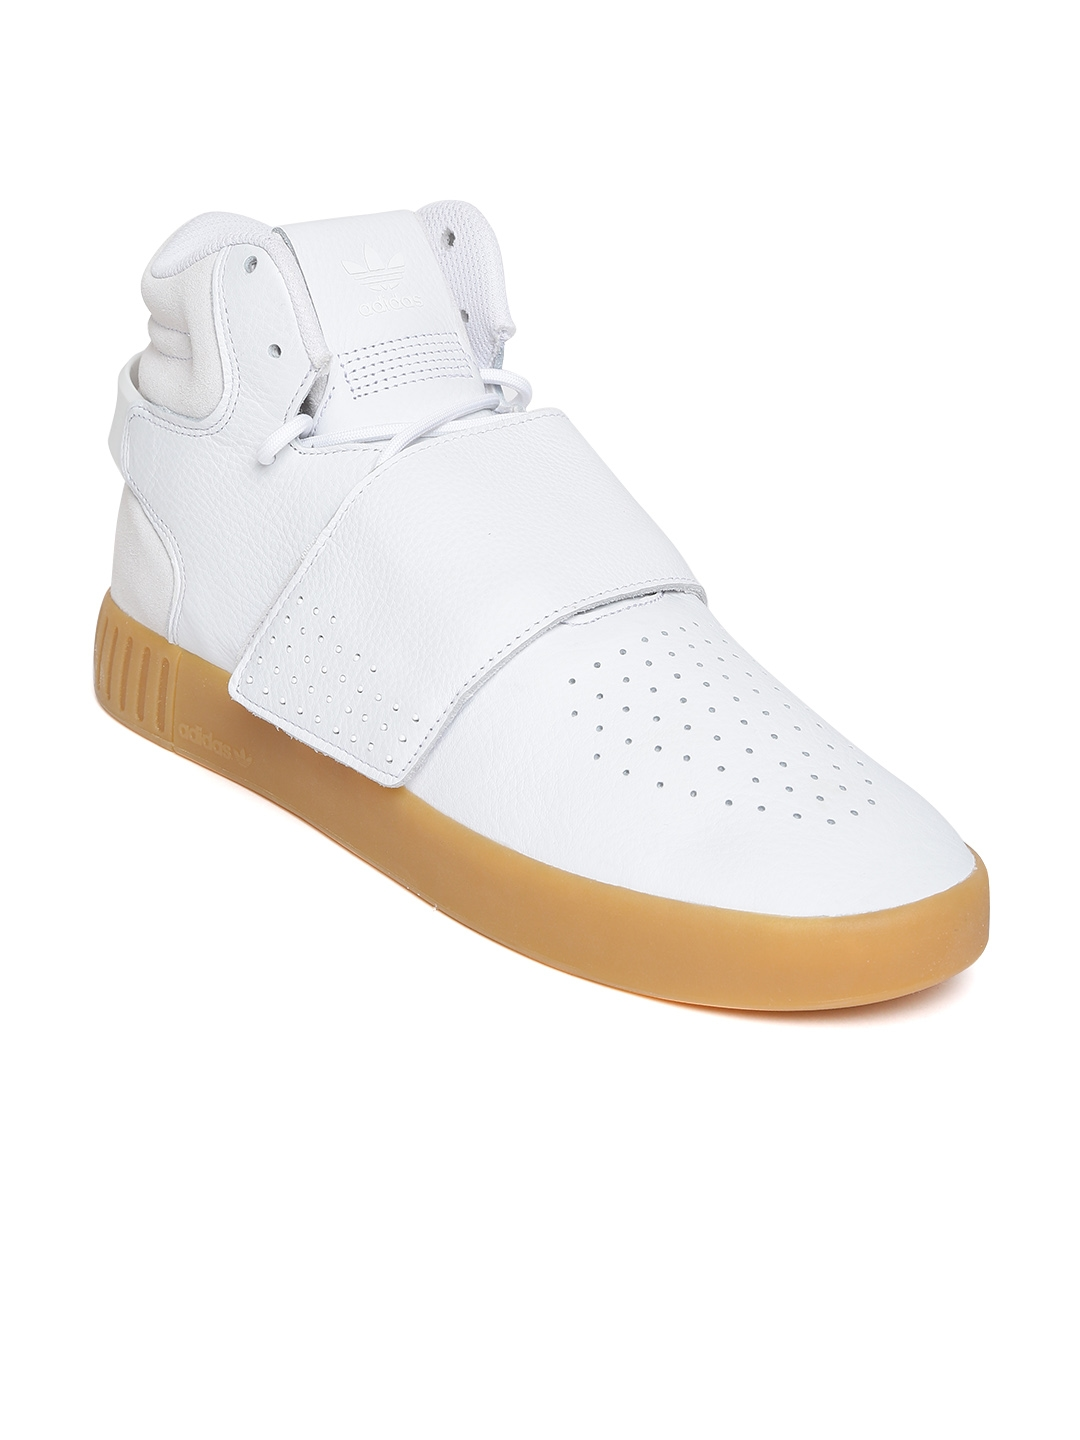 c42f04e7d8 ADIDAS Originals Men White Tubular Invader Strap Mid-Top Leather Sneakers